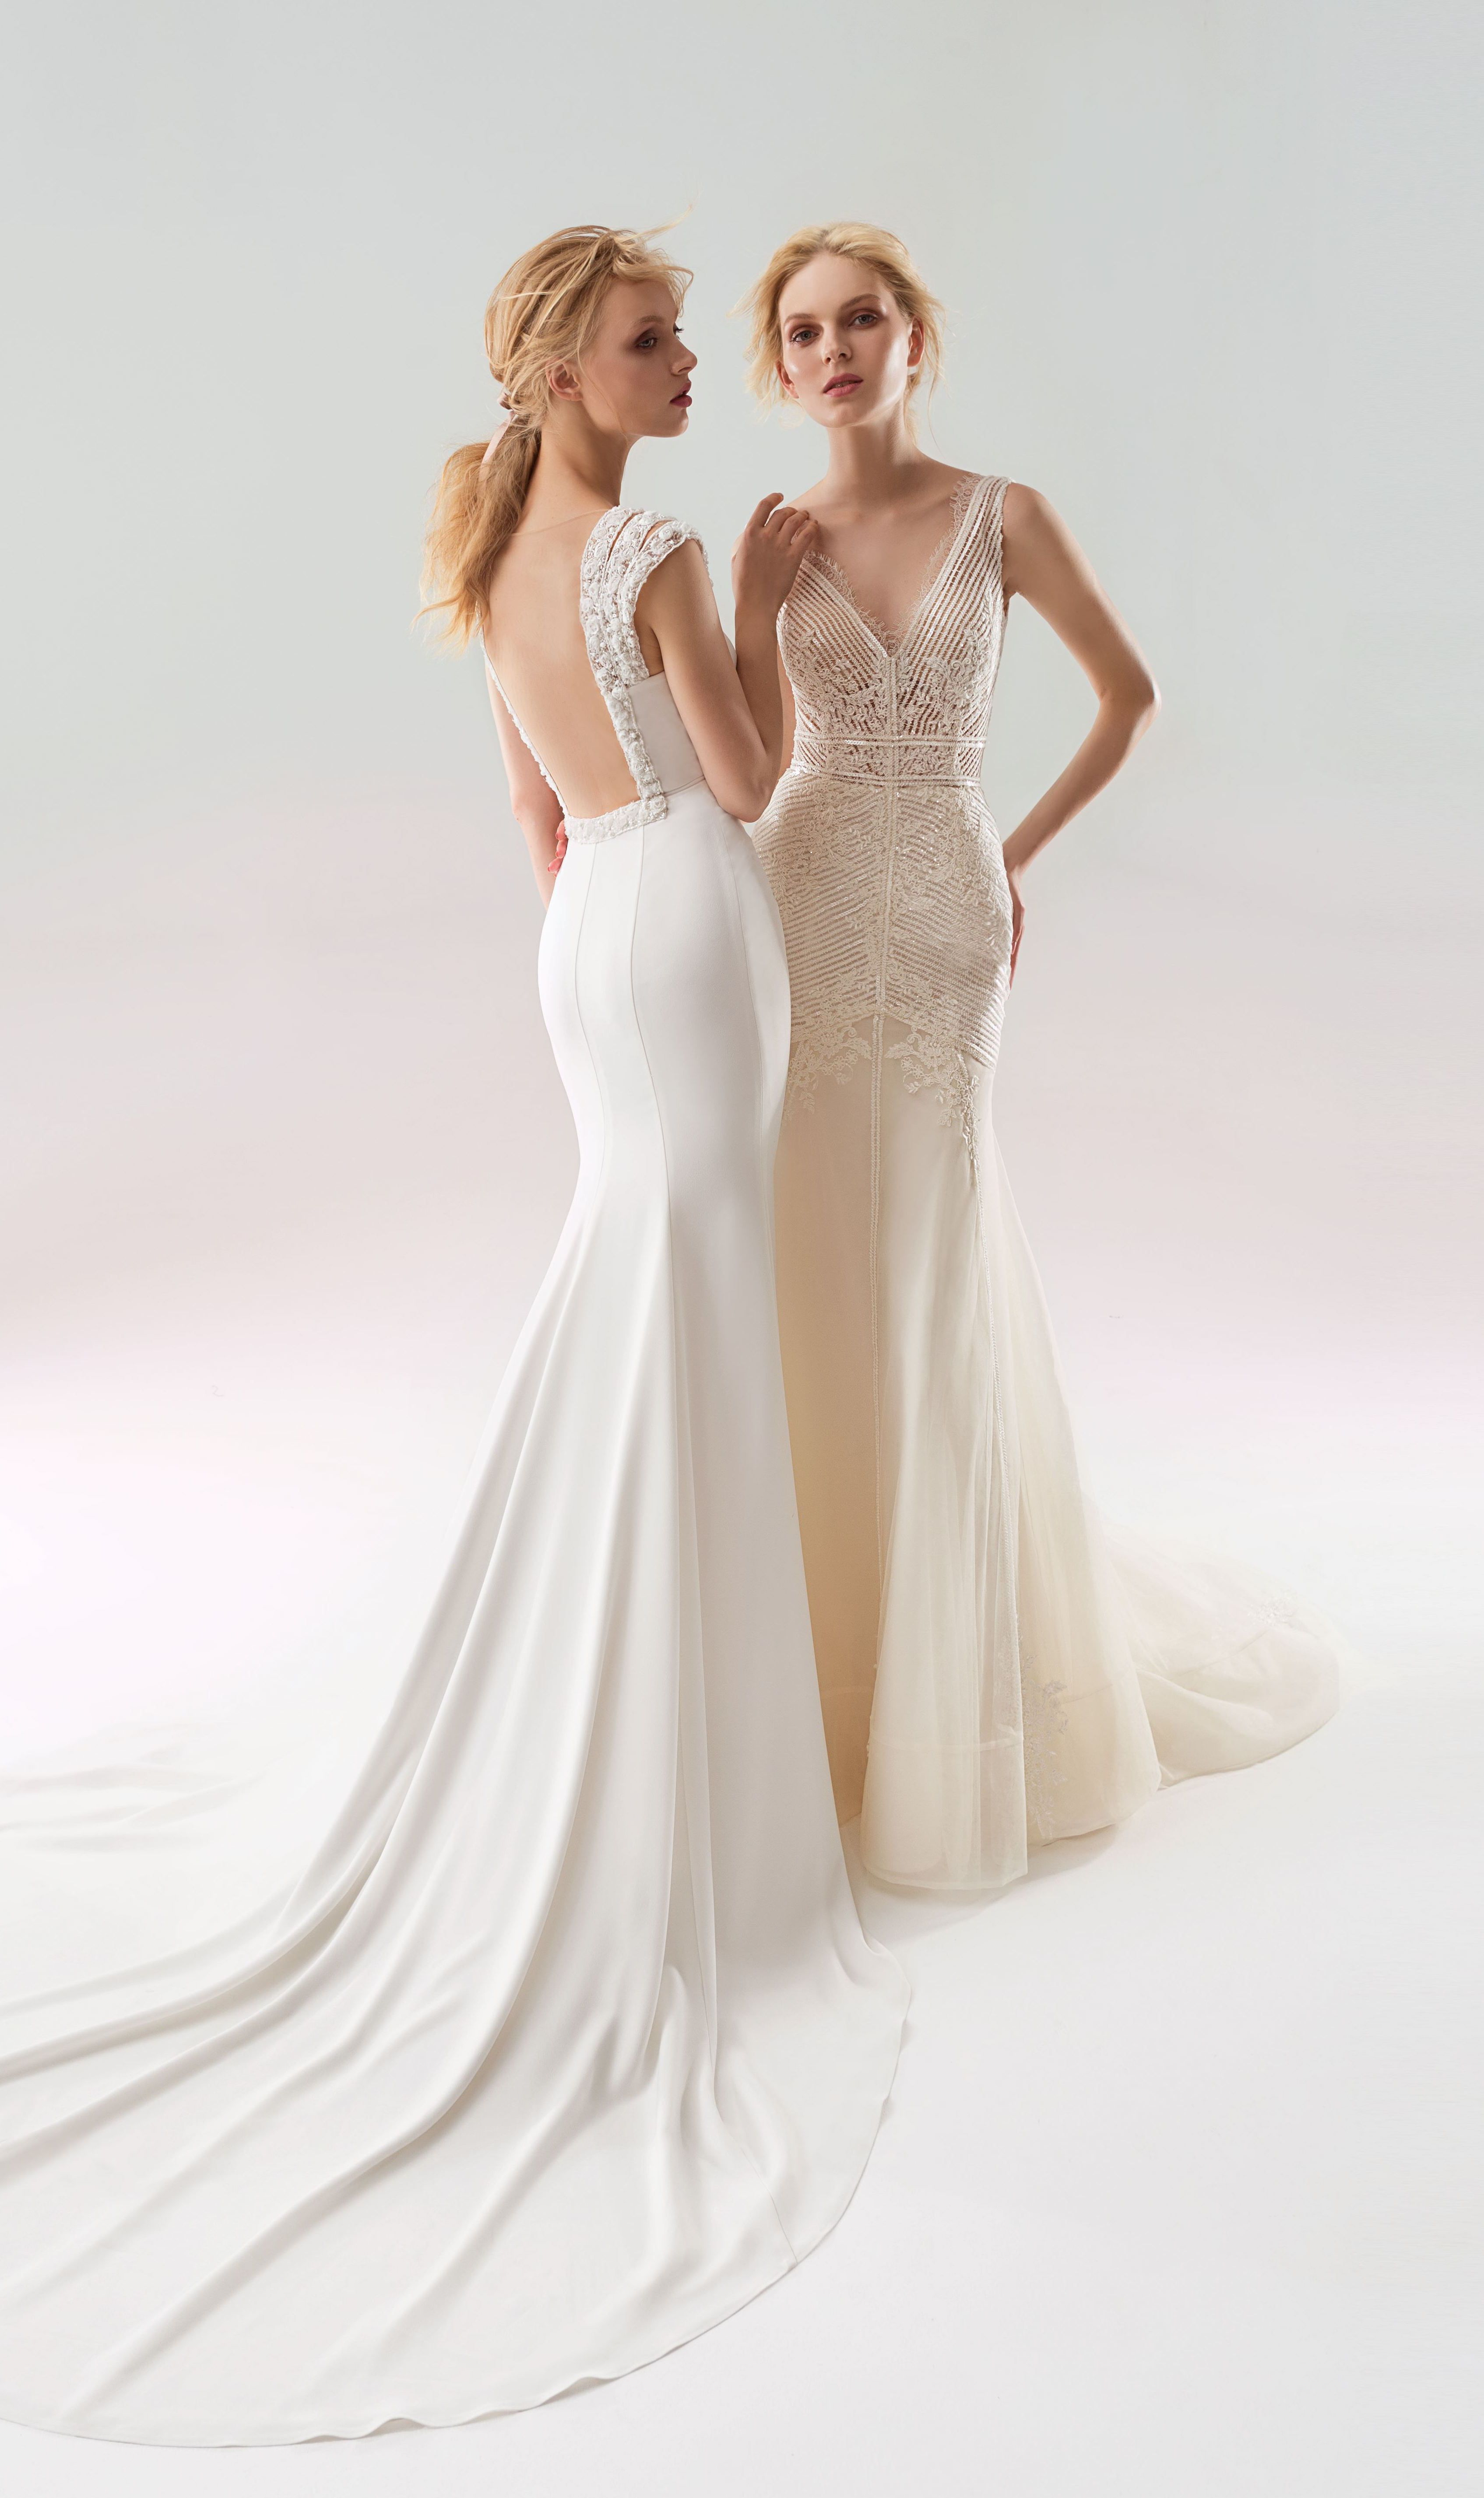 This New Slimming Papilio Wedding Gowns Are Right Out Of 2019 Catalogue A Little Sneak Peak For All The Fans Clic Mermaid Dress Style